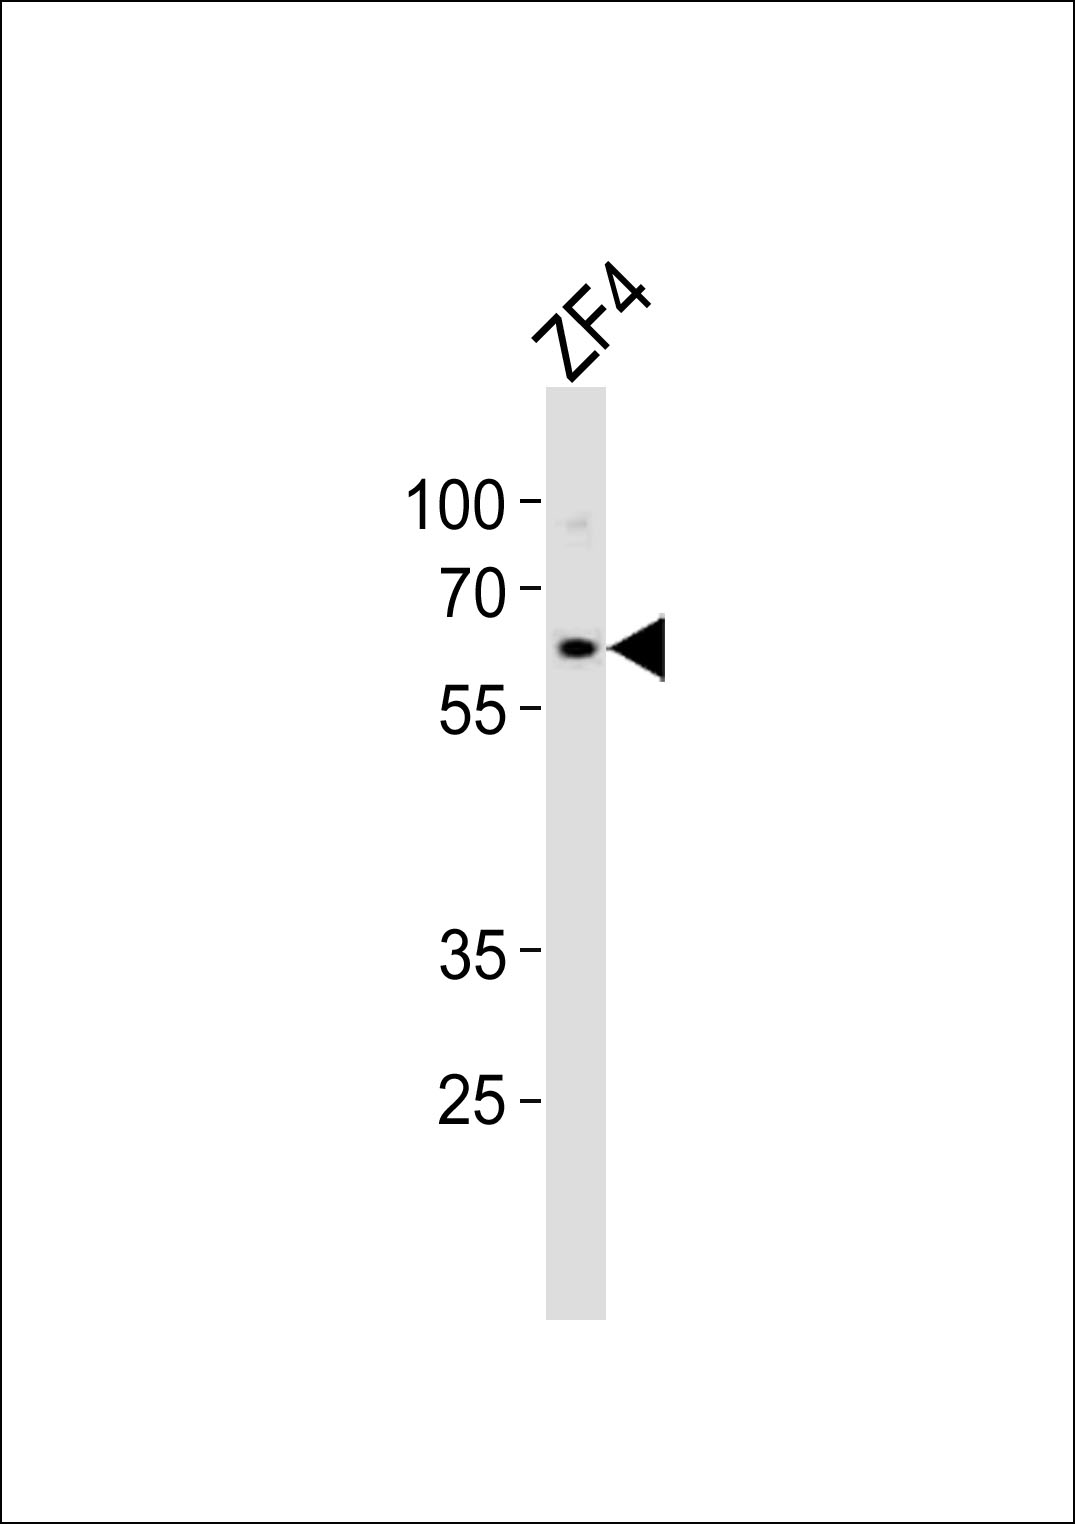 Western blot of lysate from ZF4 cell line, using (DANRE) camk2d2 Antibody. Antibody was diluted at 1:1000. A goat anti-rabbit IgG H&L (HRP) at 1:10000 dilution was used as the secondary antibody. Lysate at 35ug.